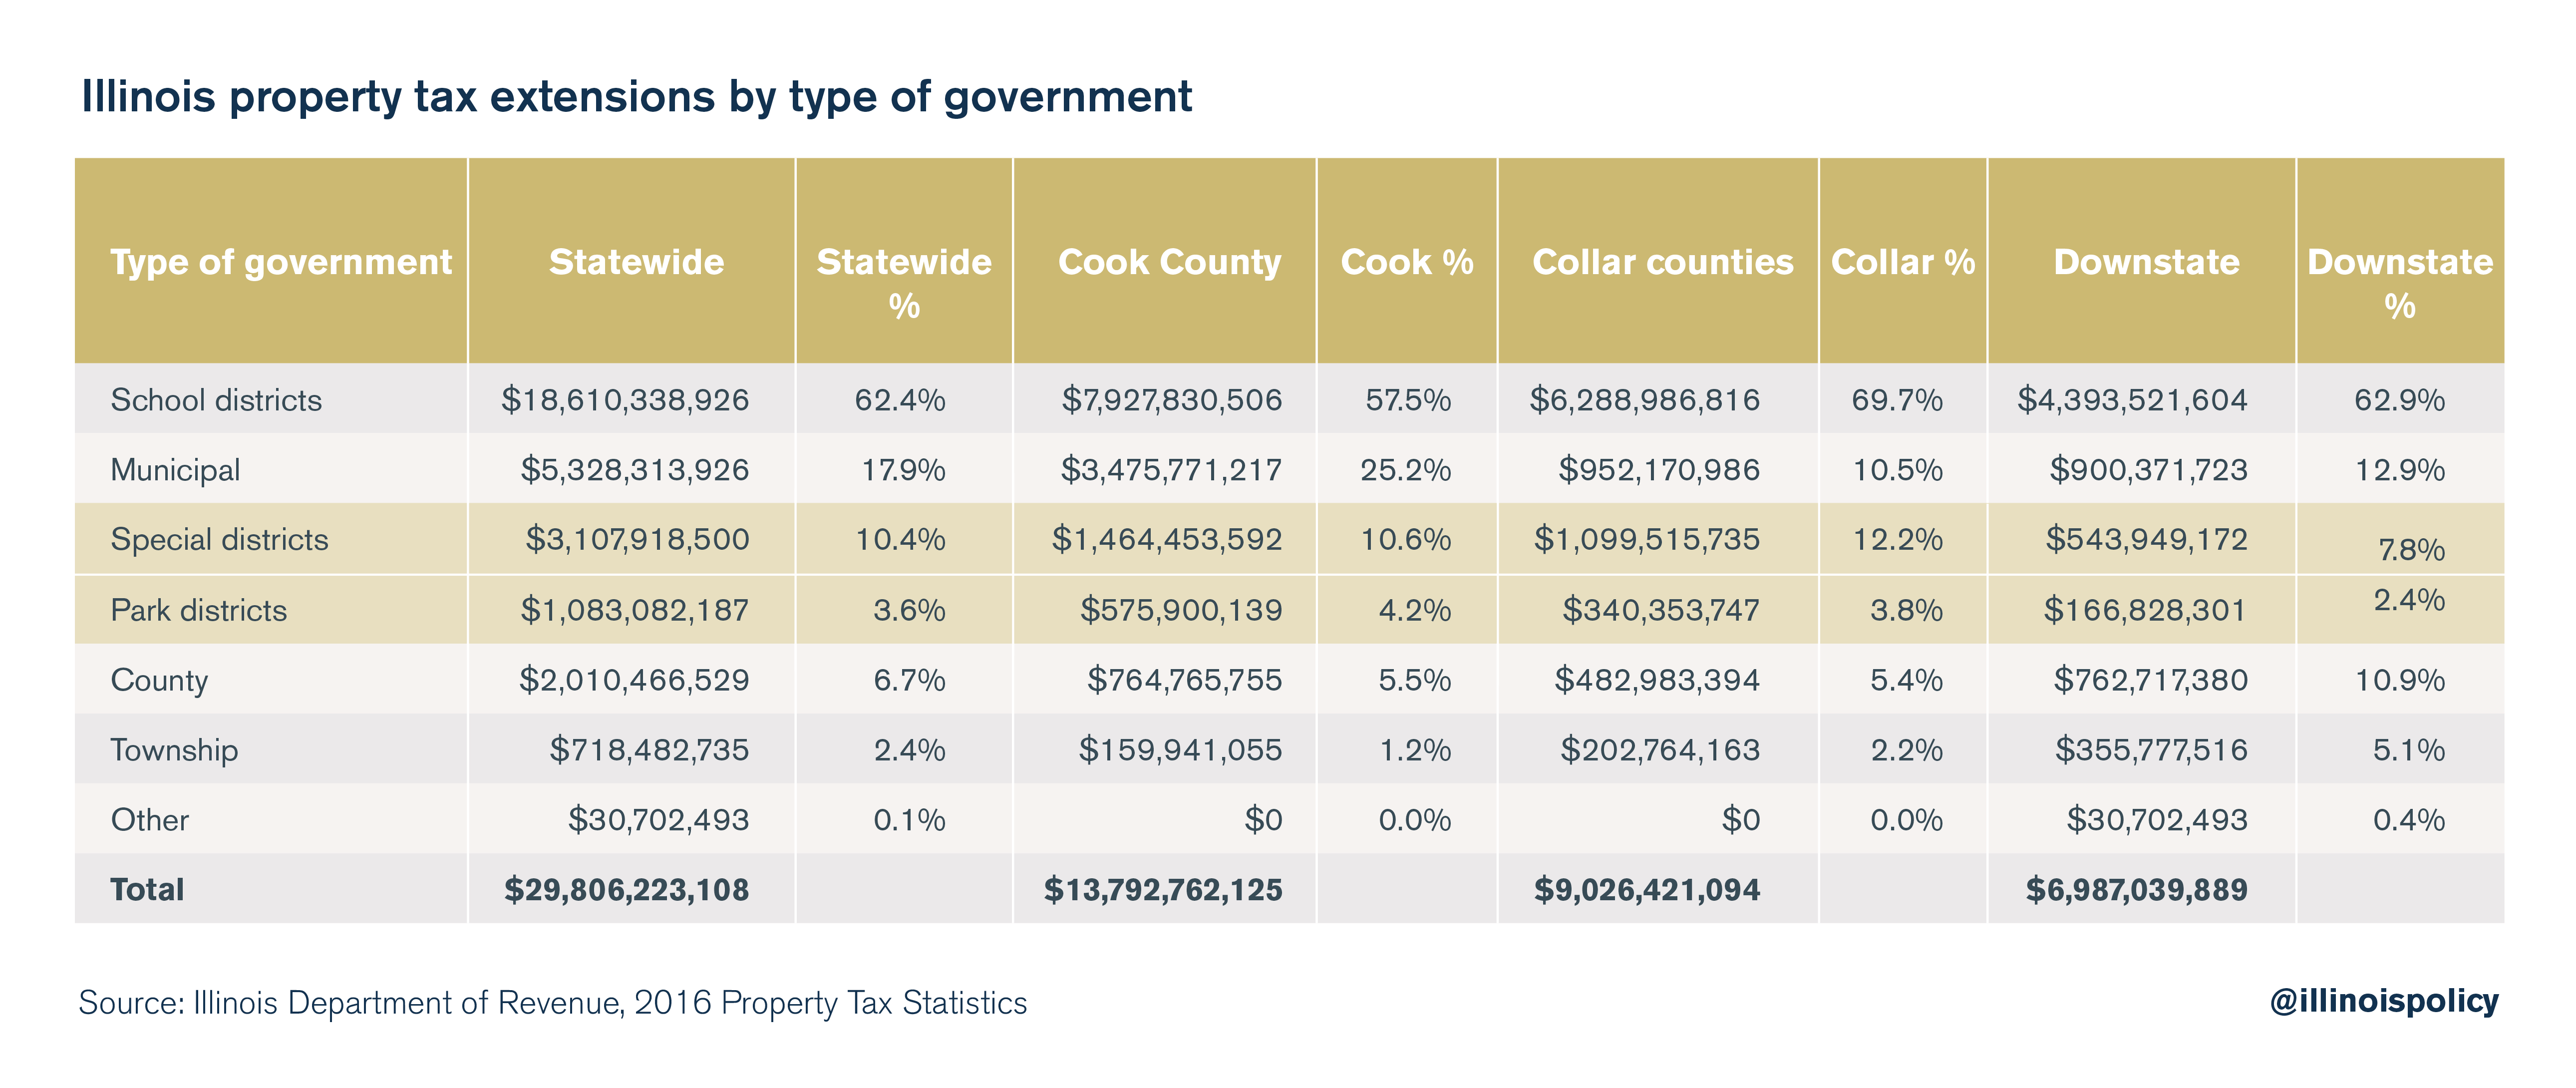 Illinois property extensions by type of government